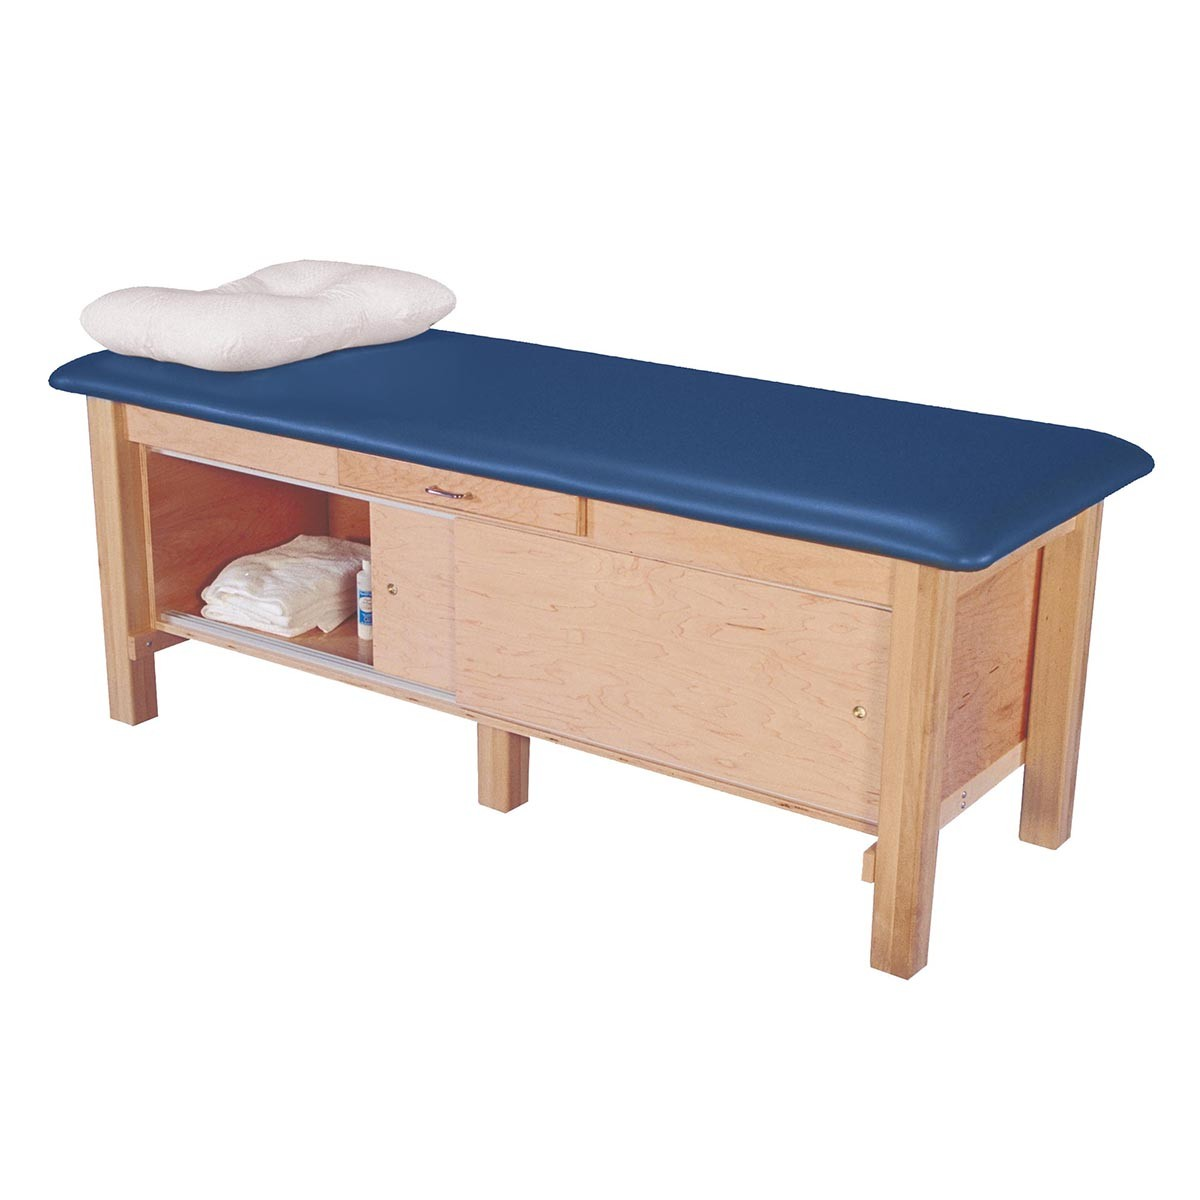 Maple Hardwood Treatment Table With Enclosed Cabinet